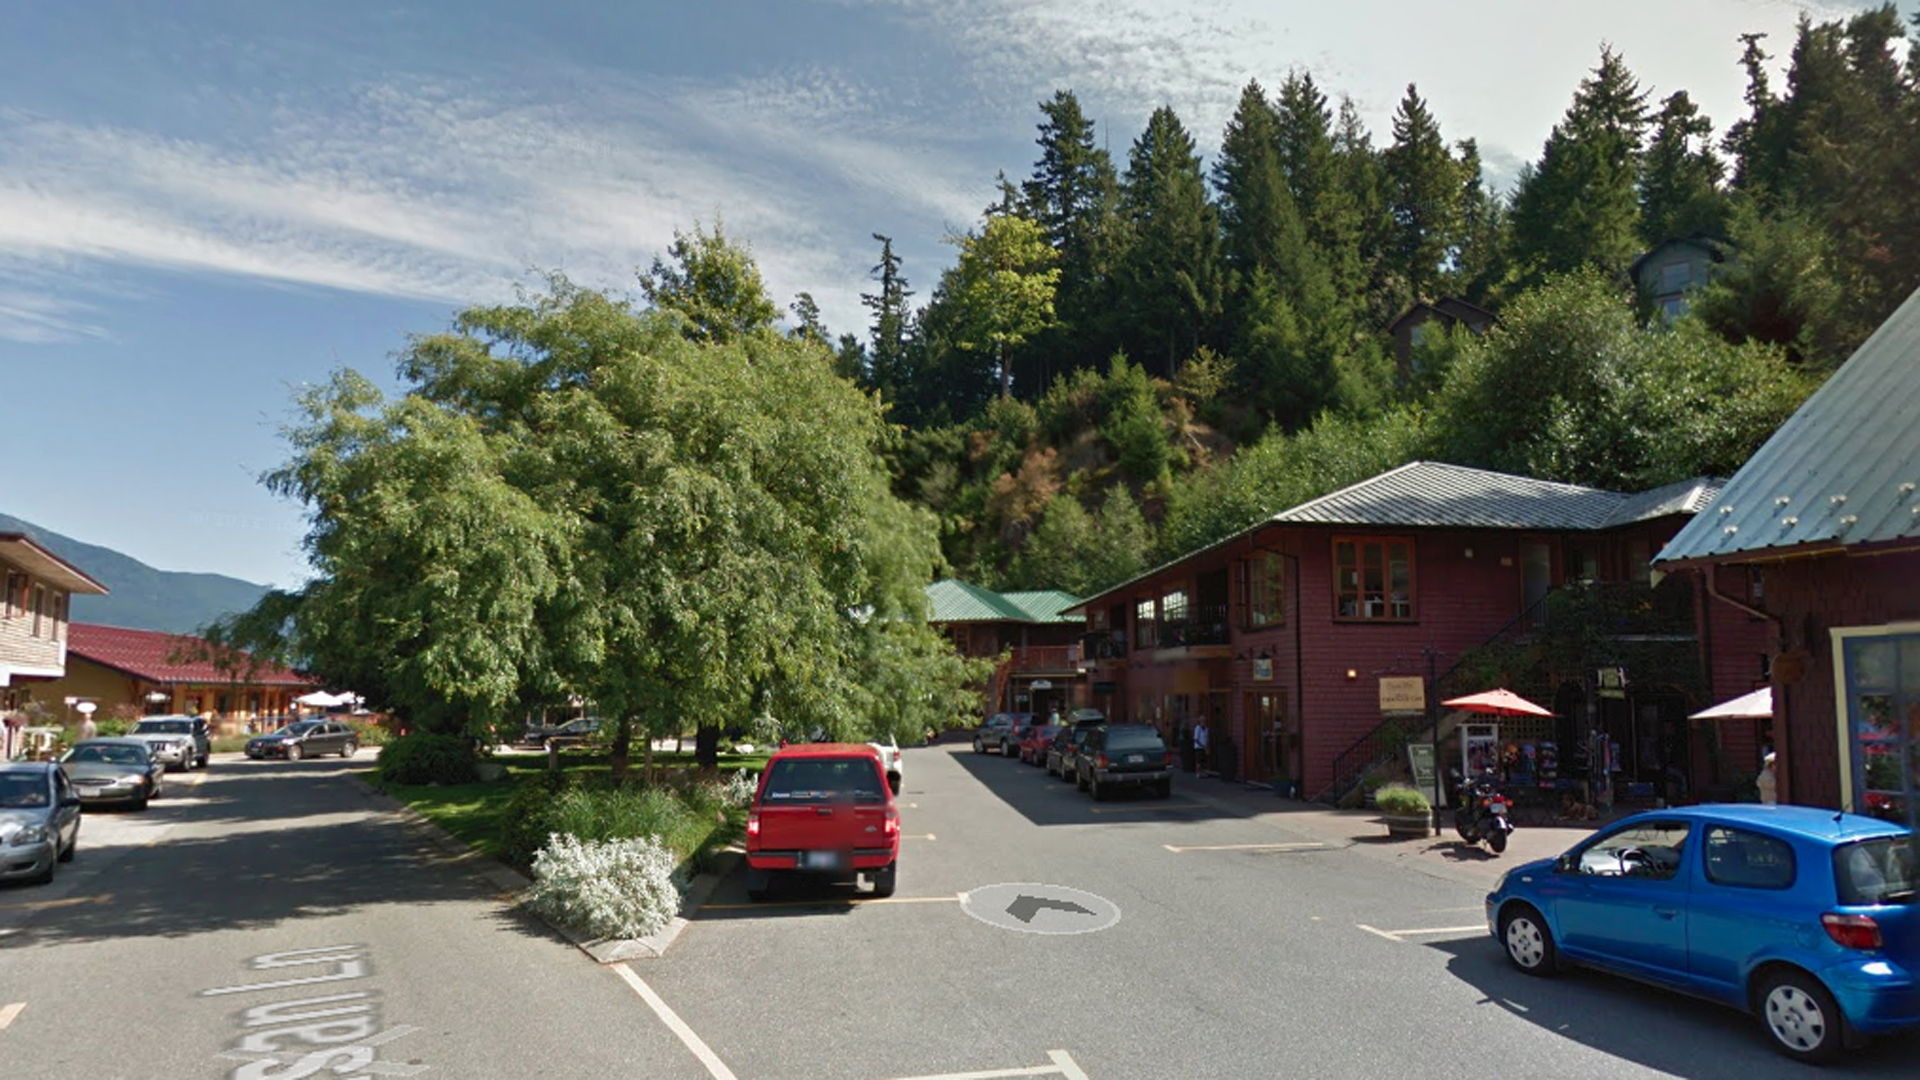 The area of British Columbia where Bowen Island Montessori School is located is seen in this undated image from Google Maps.